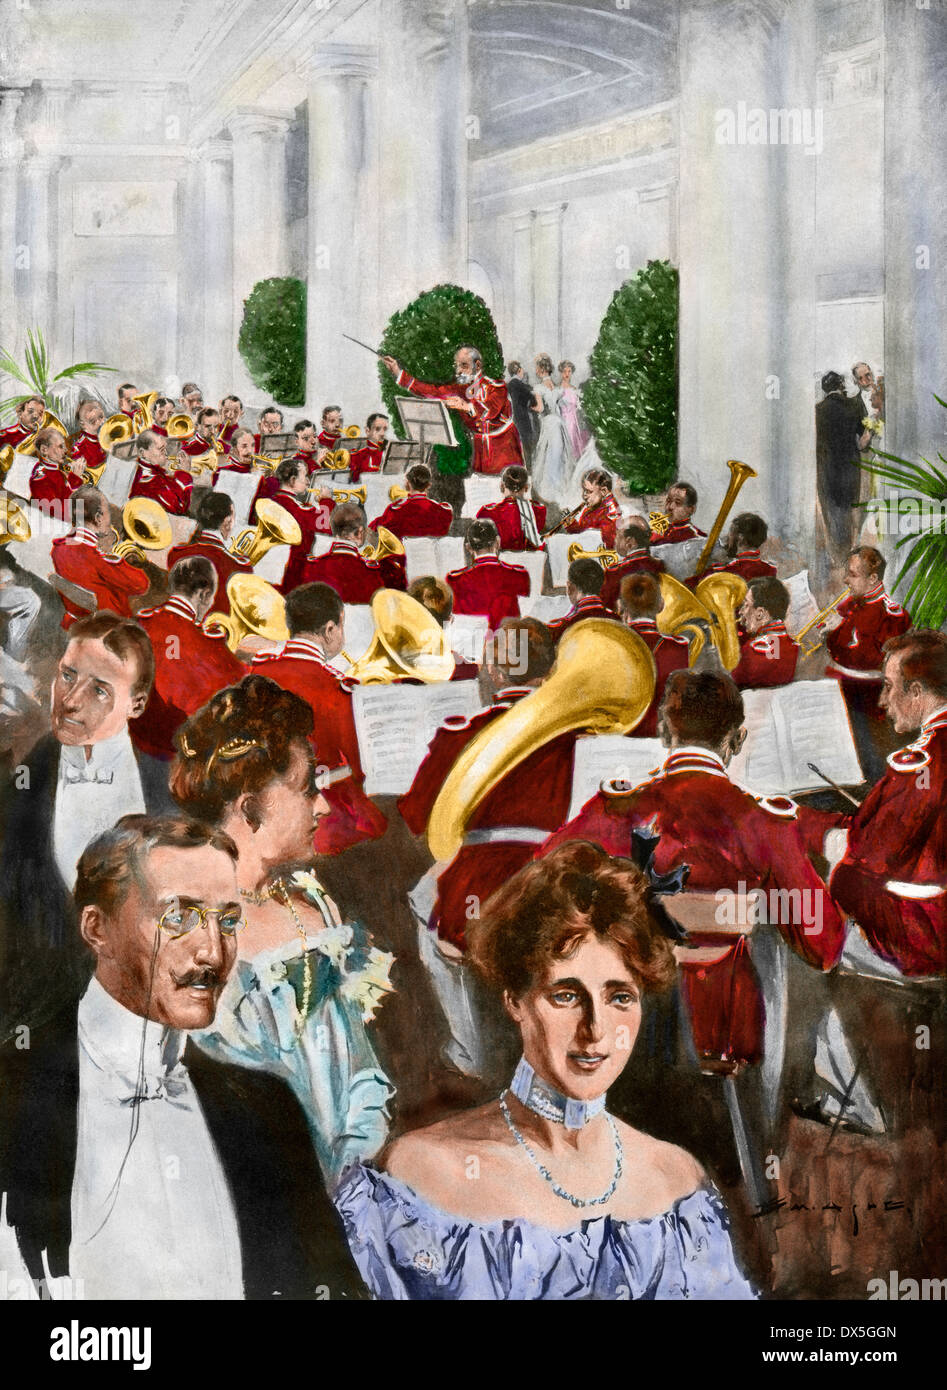 US Marine Band playing at the White House as guests proceed to meet President Theodore Roosevelt, 1903. Hand-colored halftone of an illustration - Stock Image